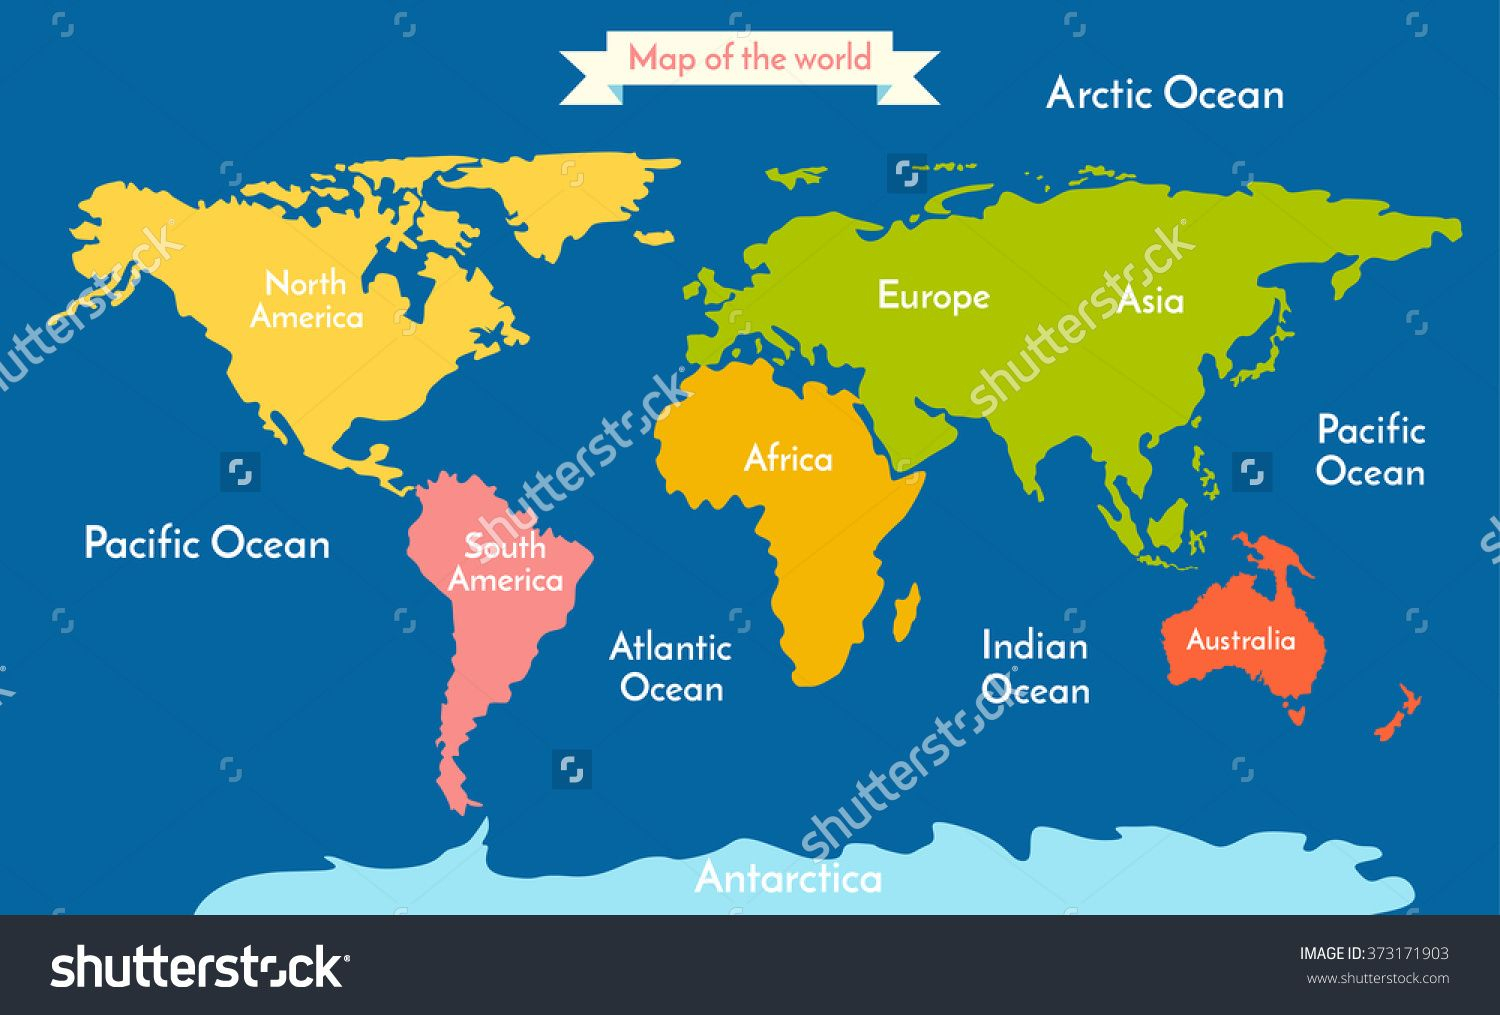 Printable Map Of The 7 Continents And 5 Oceans